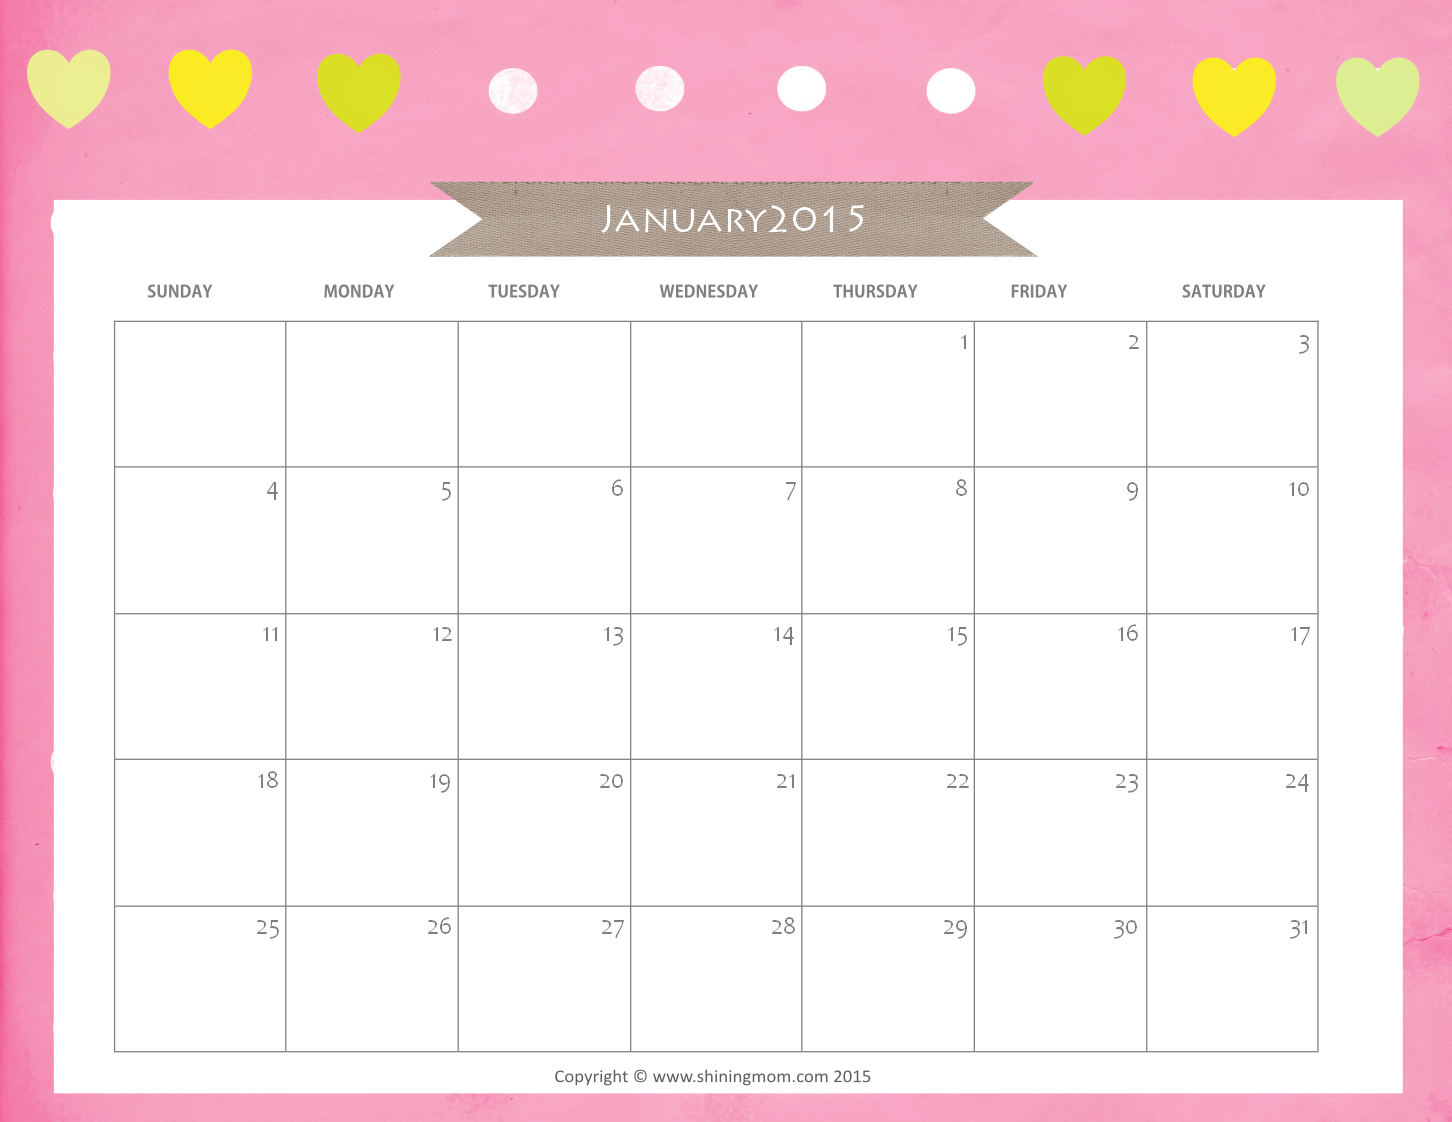 love free february calendar and free printable on pinterest